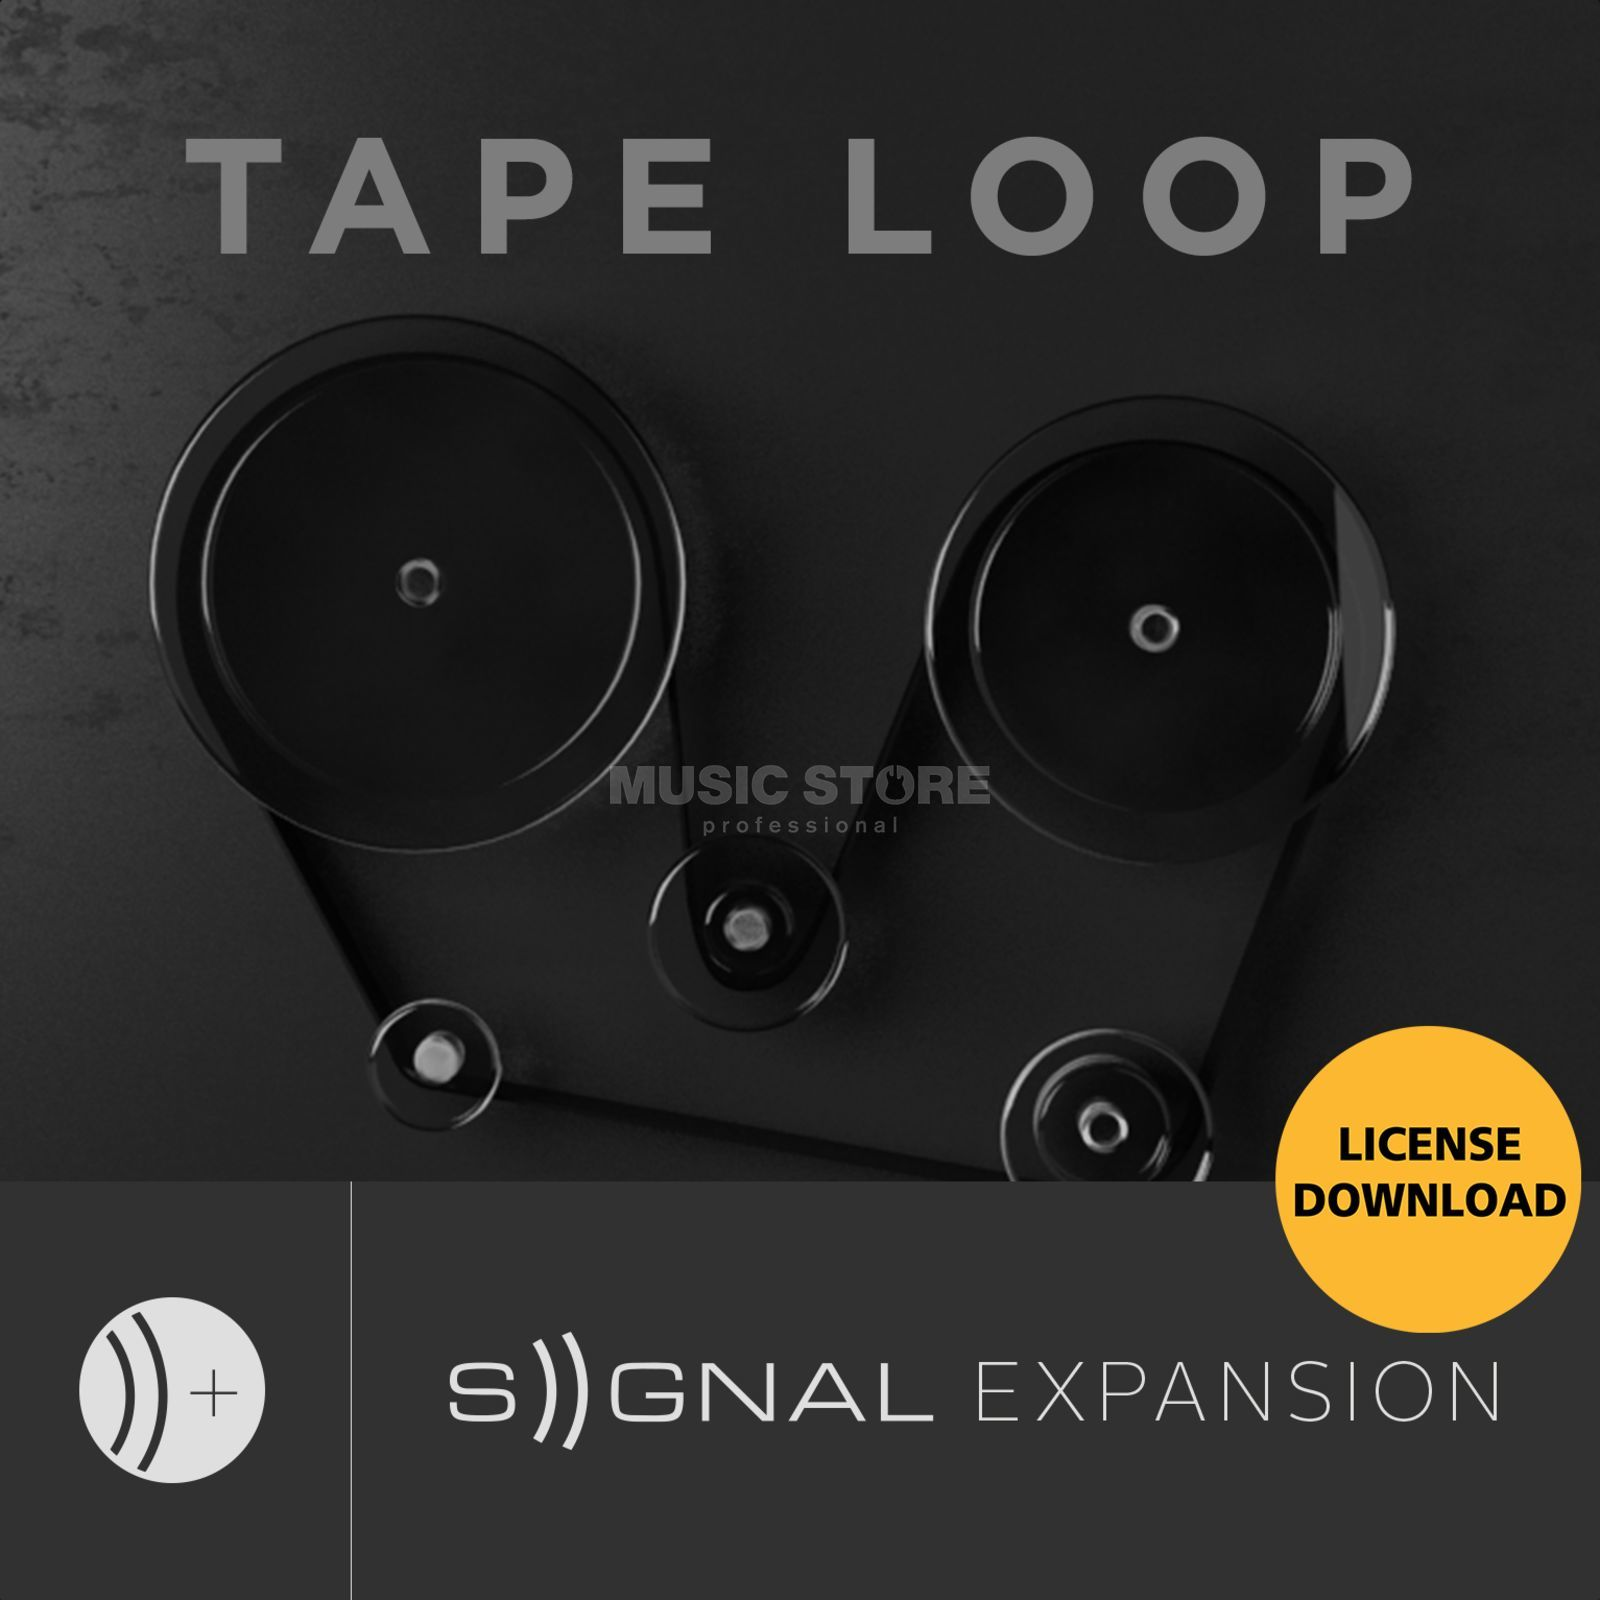 output EXP TAPE LOOP (CODE) EXPANSION SIGNAL Produktbild